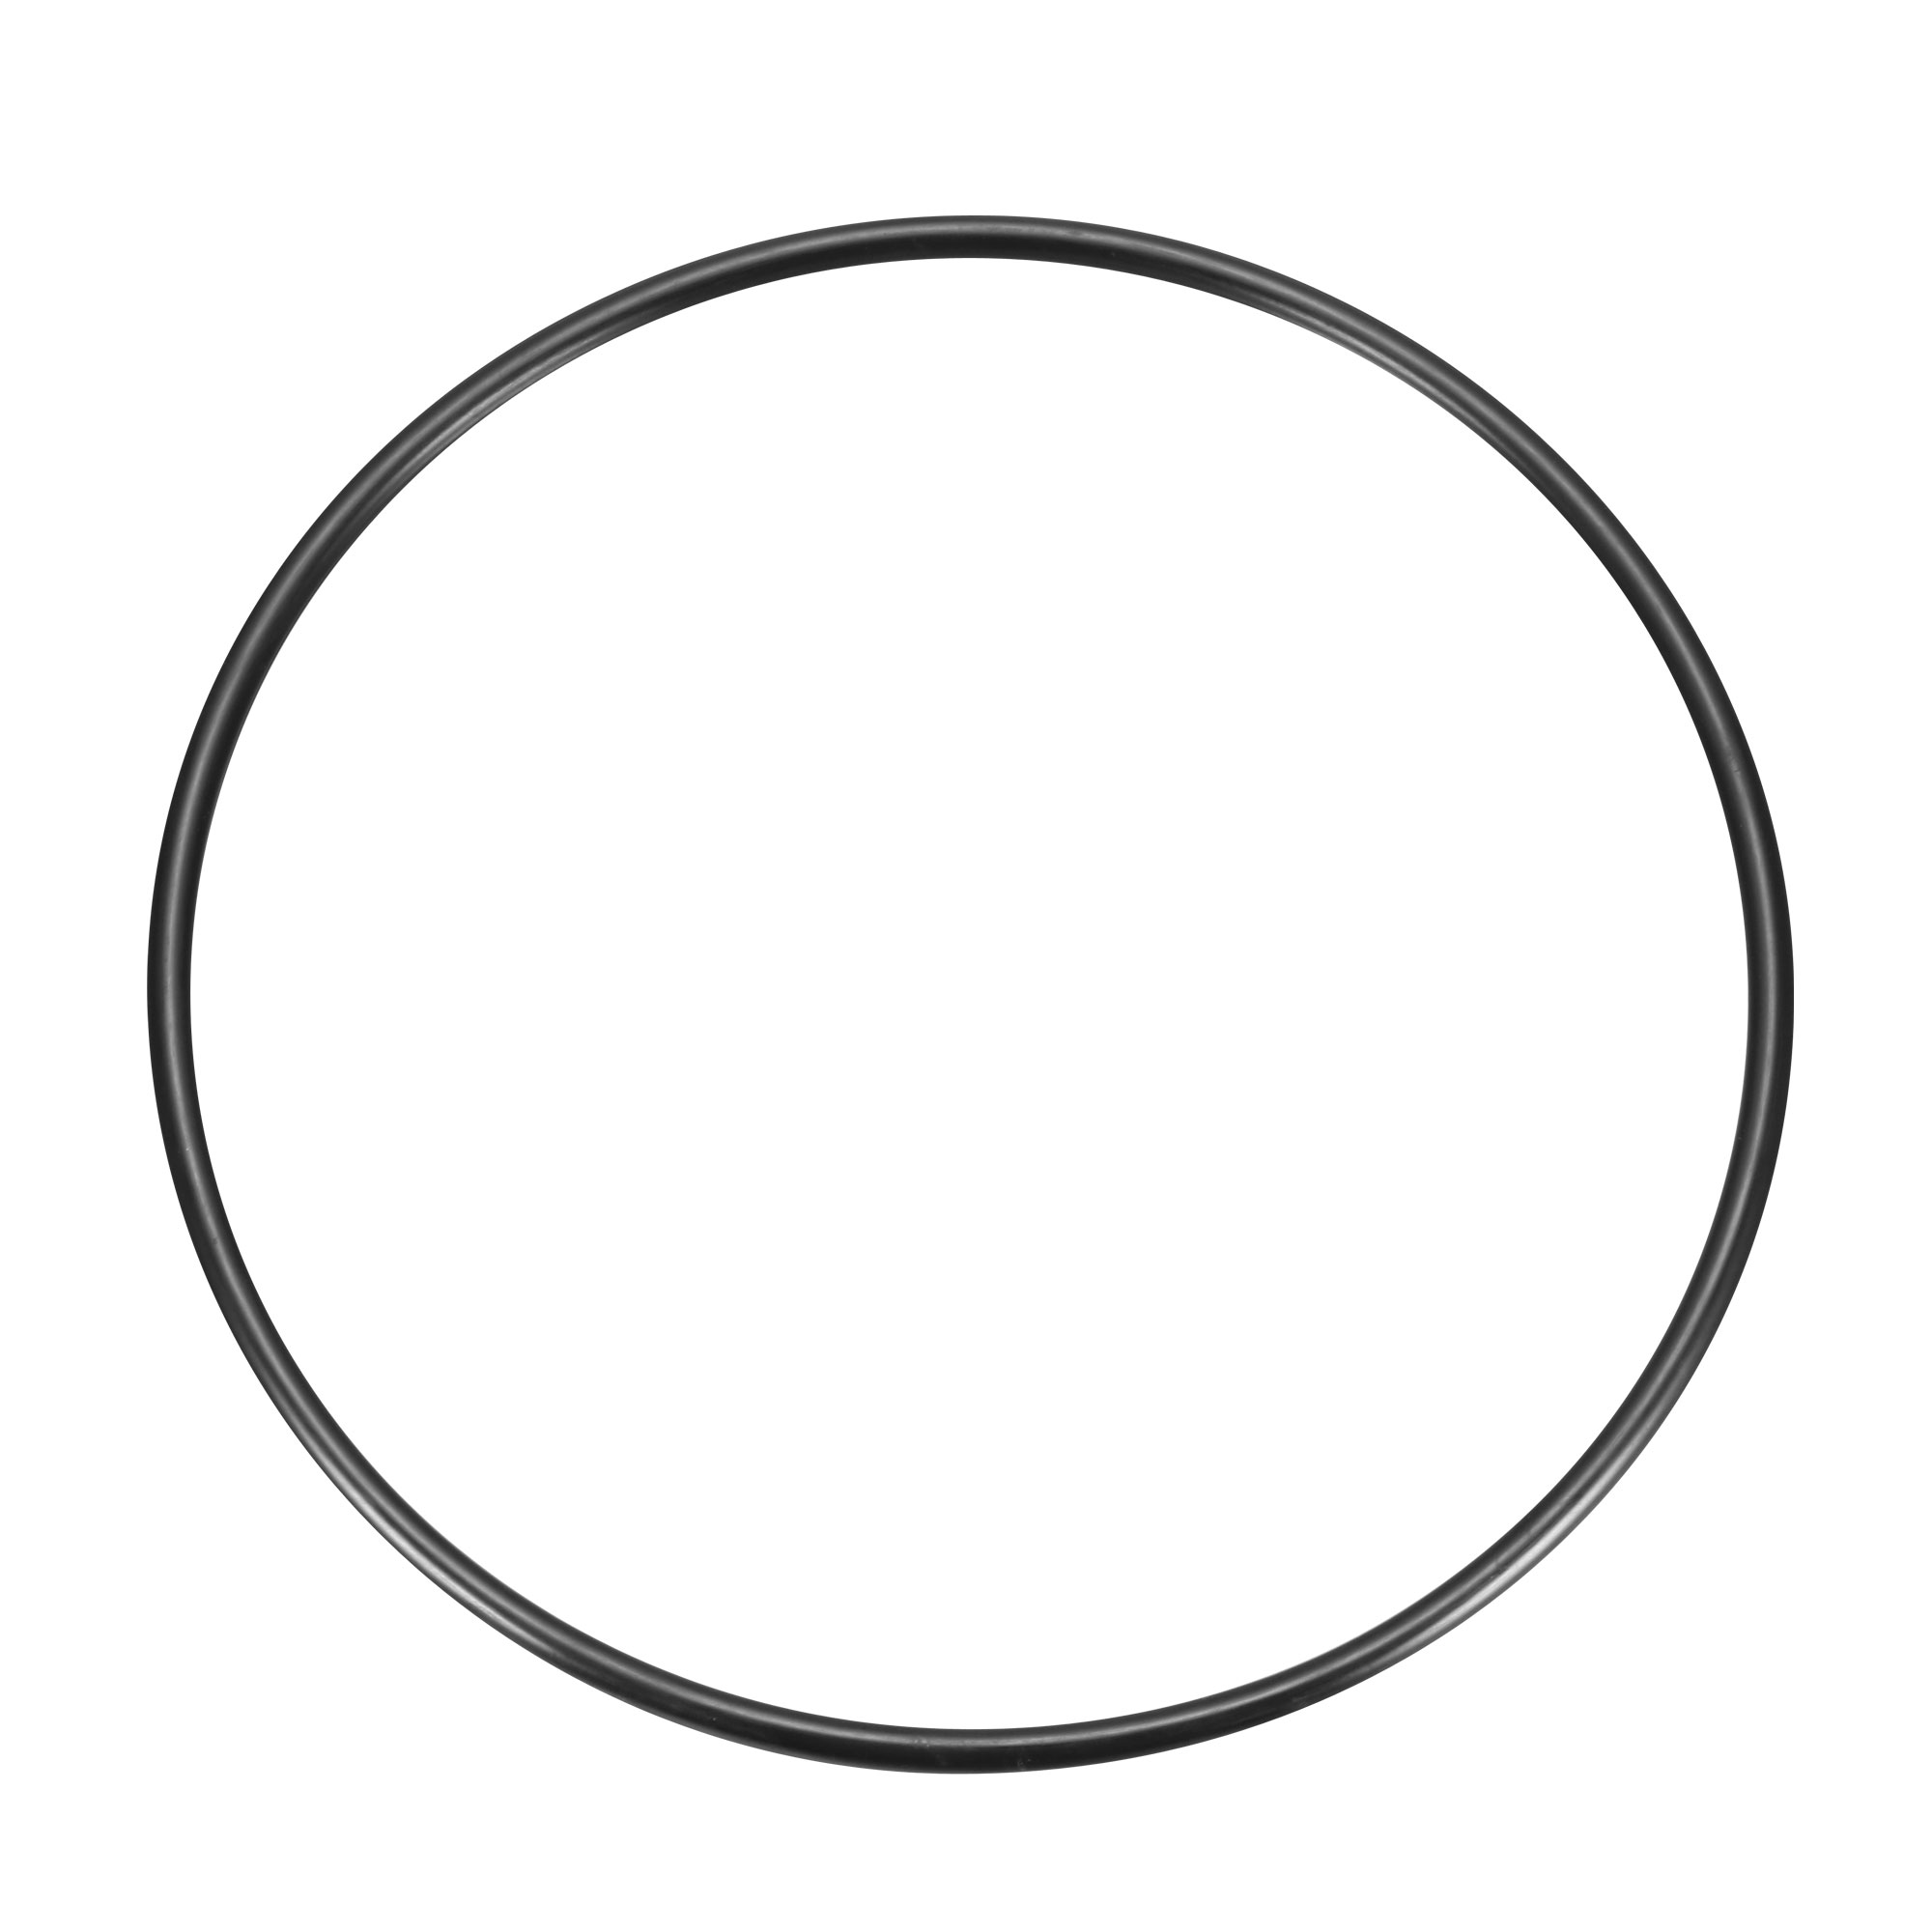 Black Universal O-Ring 290mm x 8.6mm BUNA-N Material Oil Seal Washers Grommets